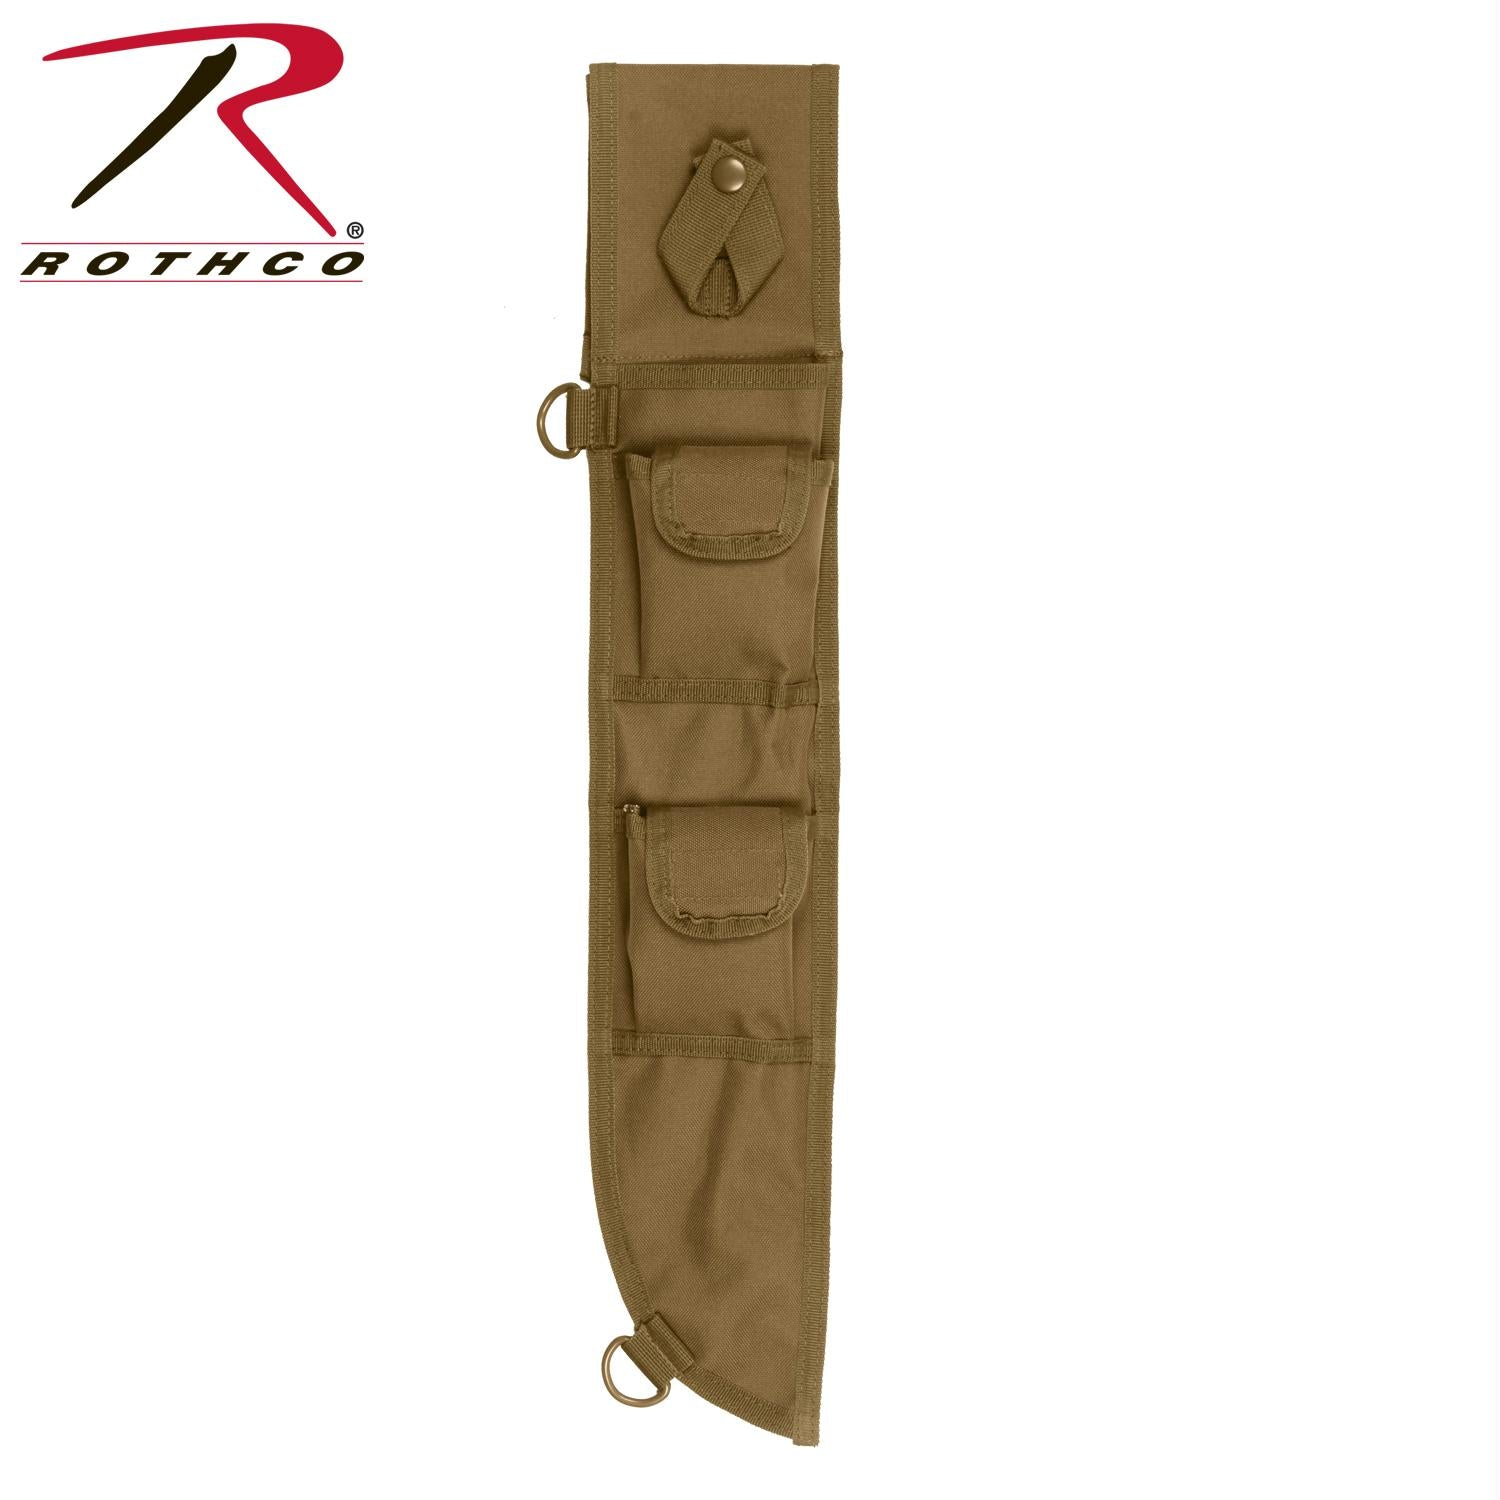 Rothco 18 Inch MOLLE Compatible Machete Sheath - Coyote Brown